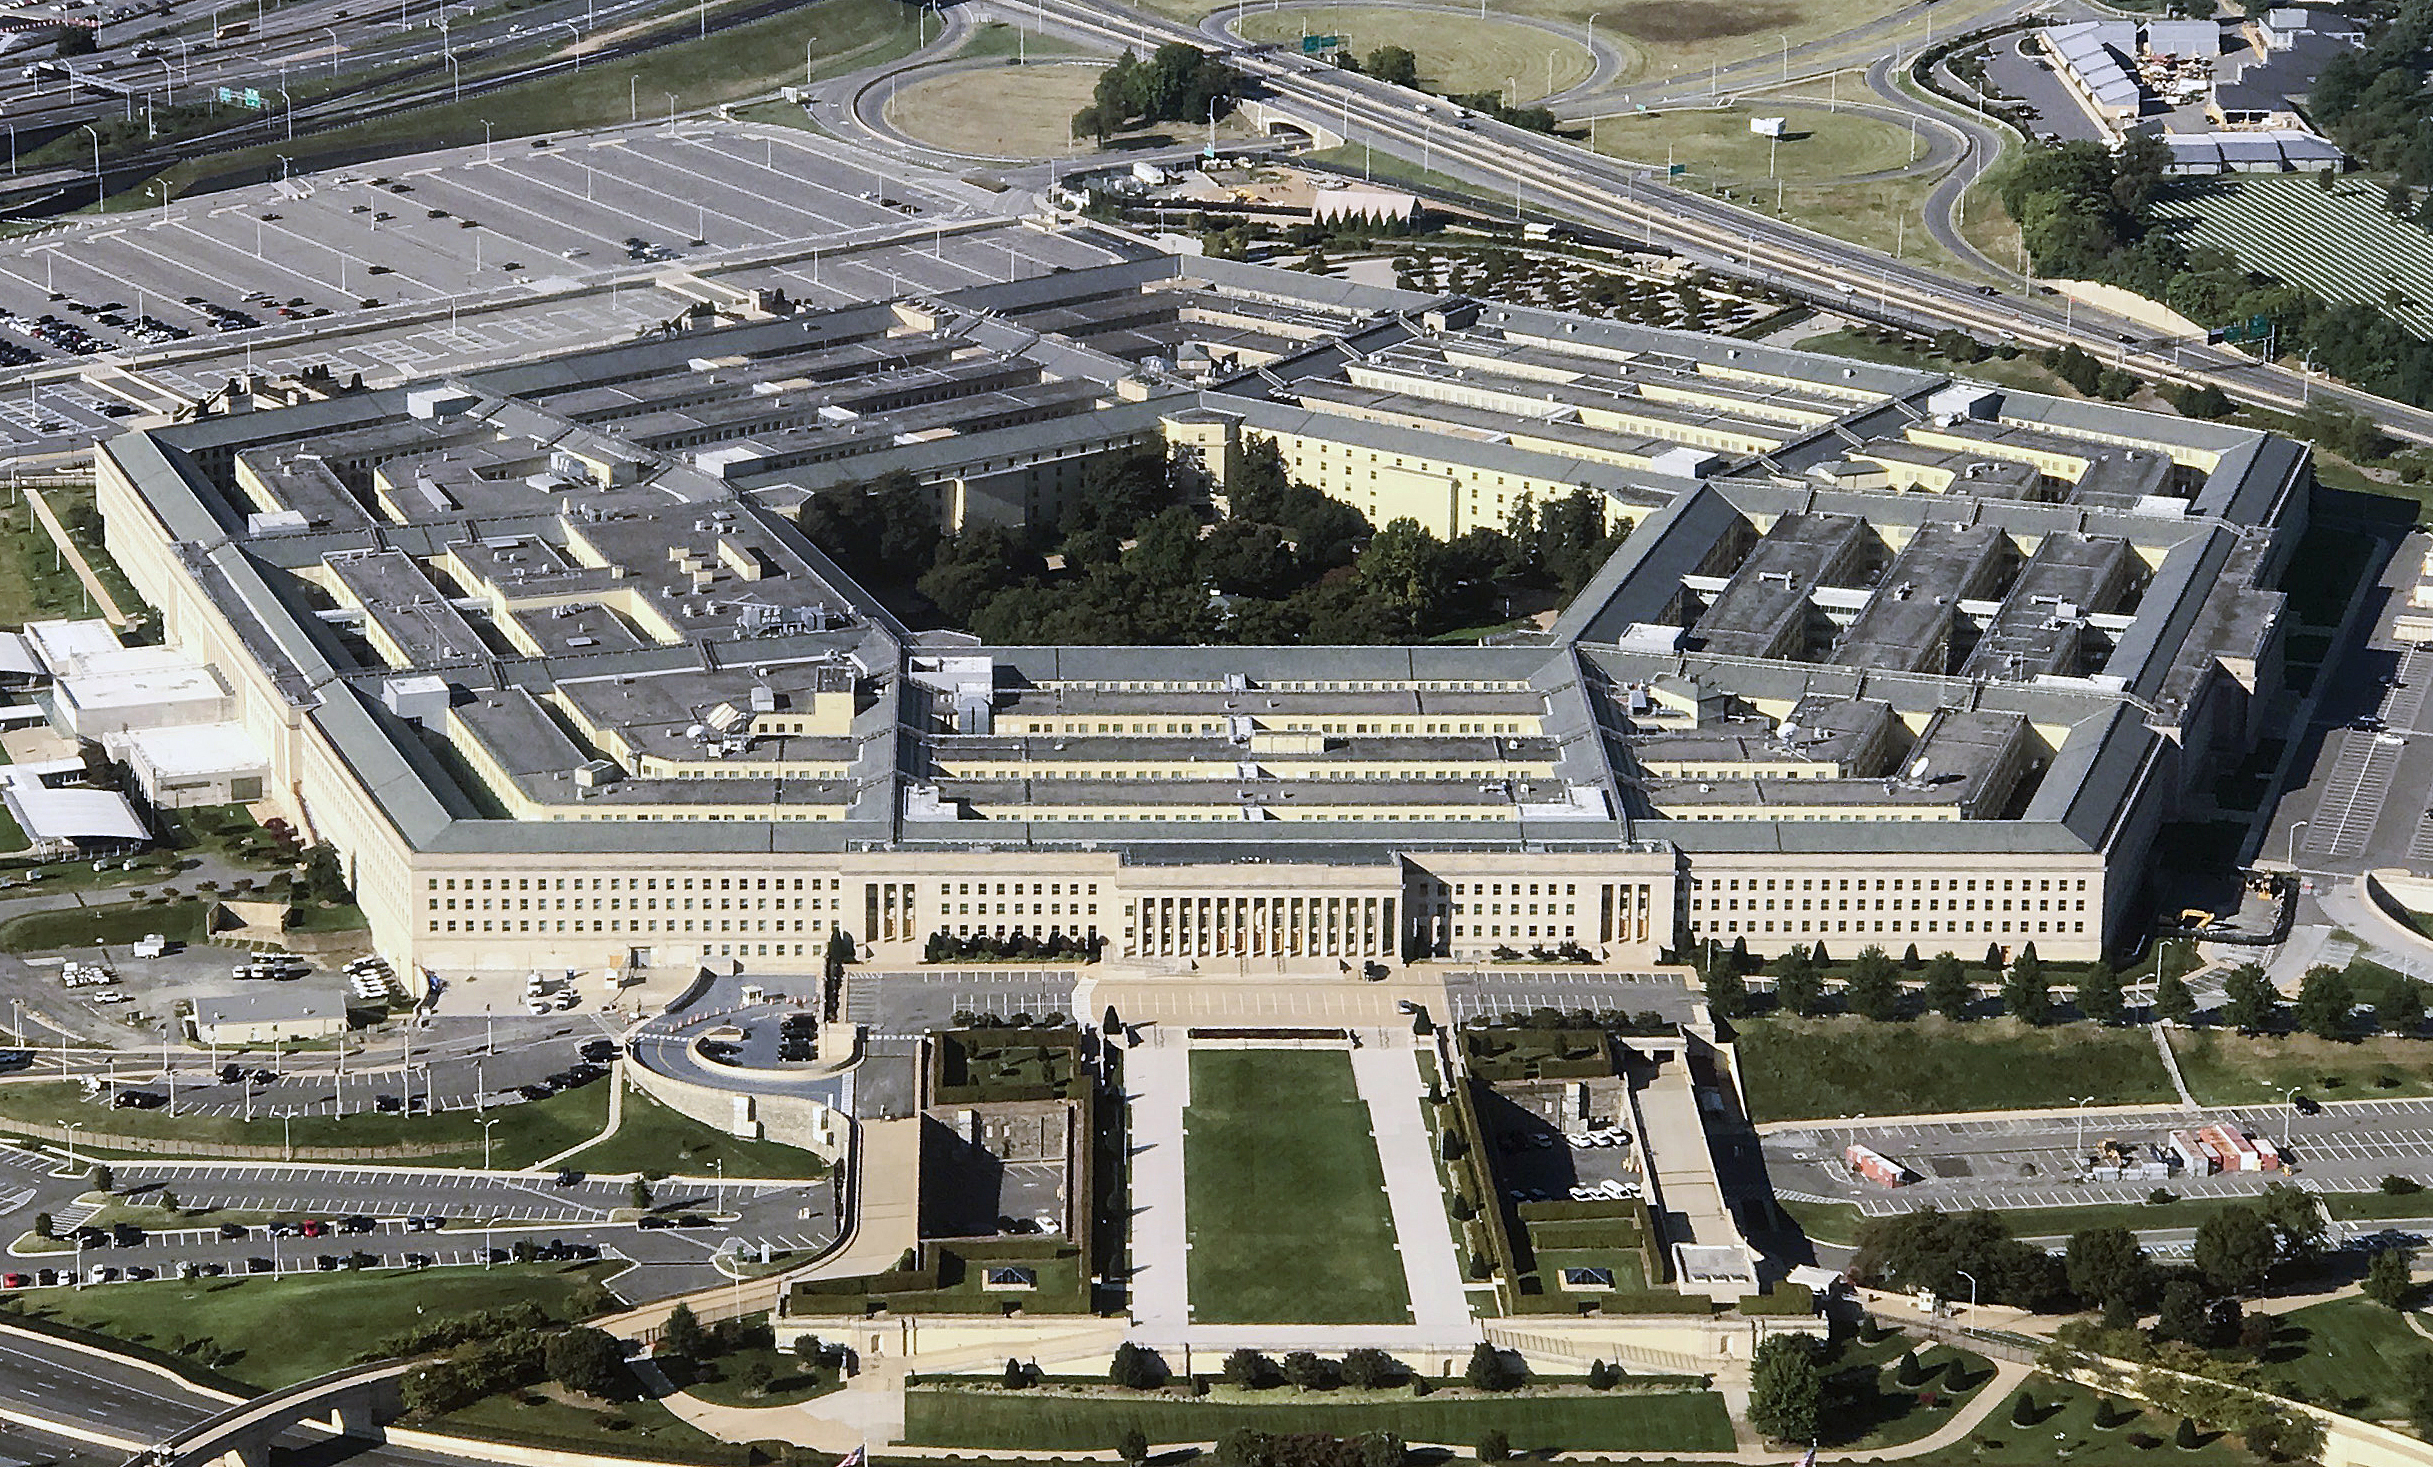 Pentagon Office Building Complex (The Pentagon)